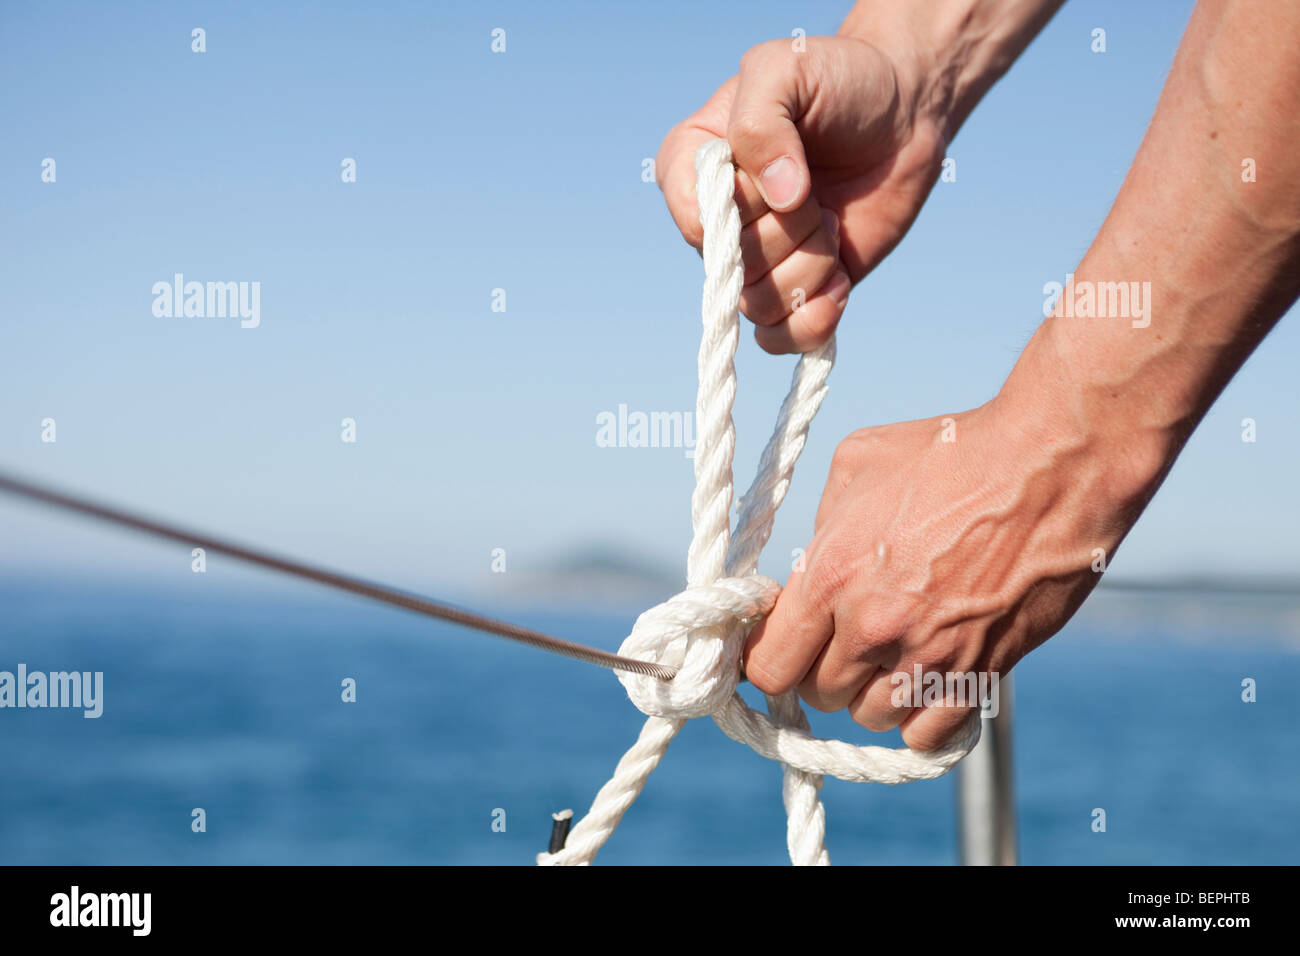 man making knot into rope - Stock Image